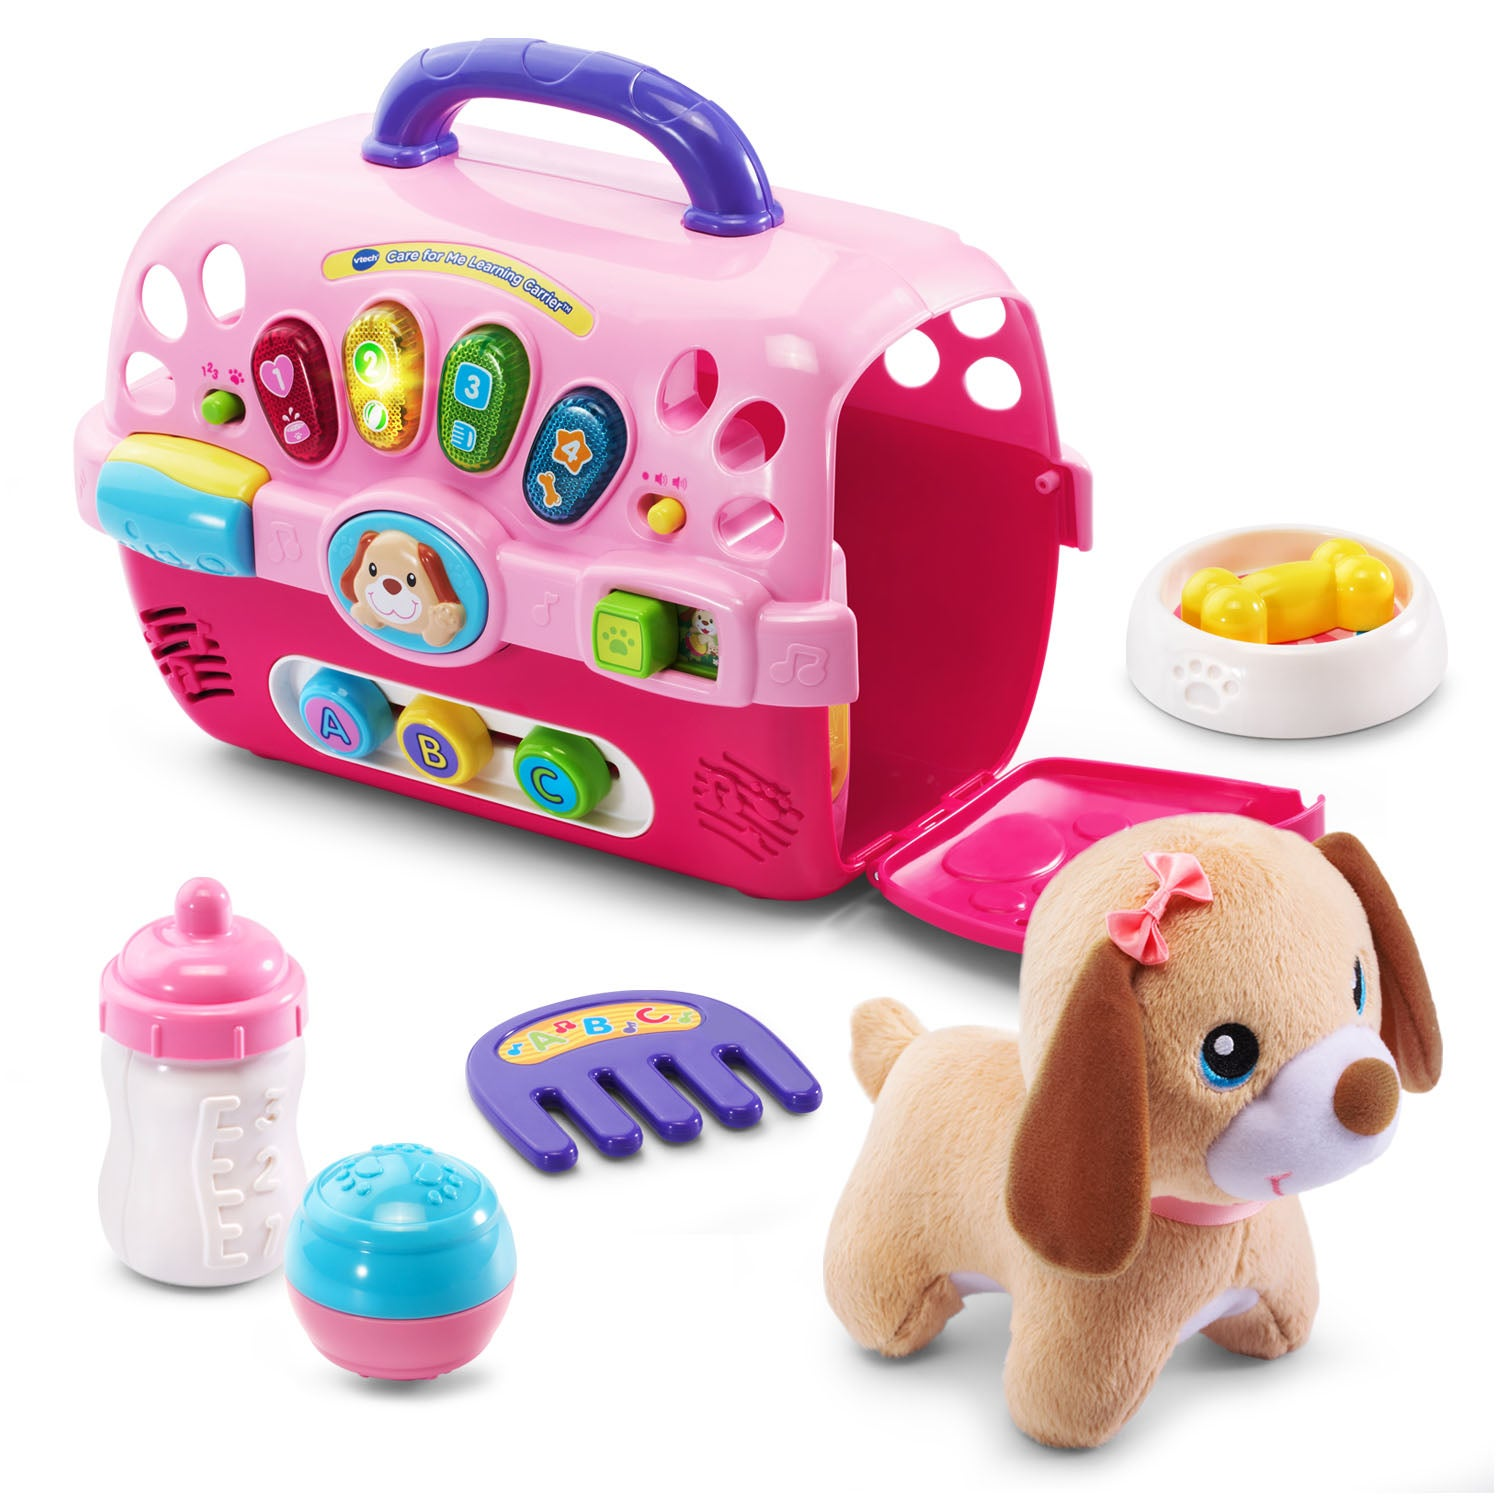 4 Toys Your Toddler Won\'t Want to Put Down This Holiday - Essence